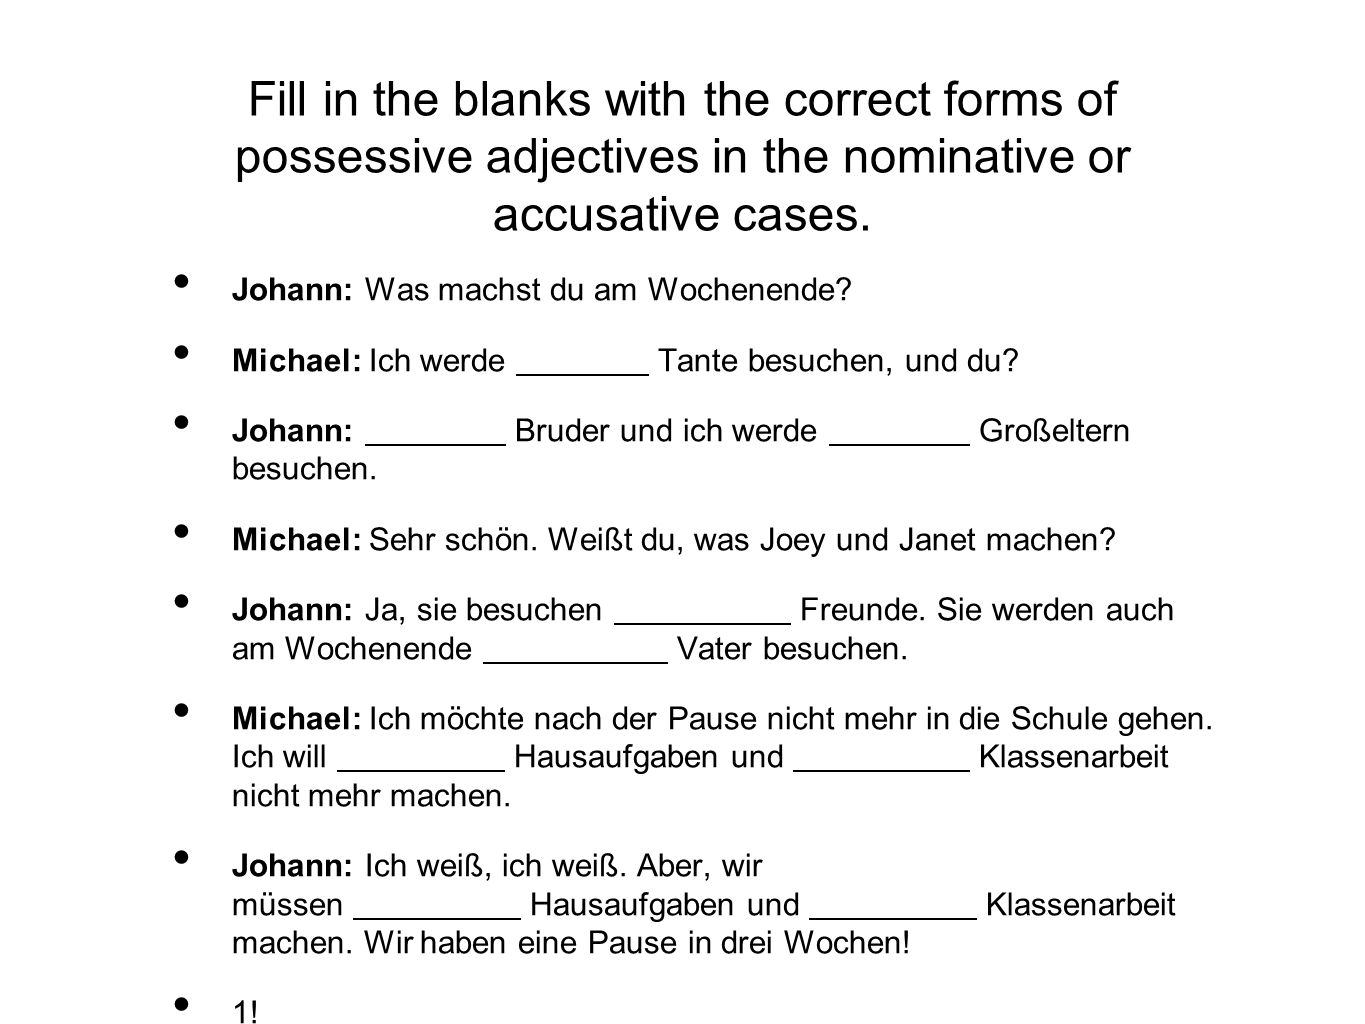 Fill in the blanks with the correct forms of possessive adjectives in the nominative or accusative cases.